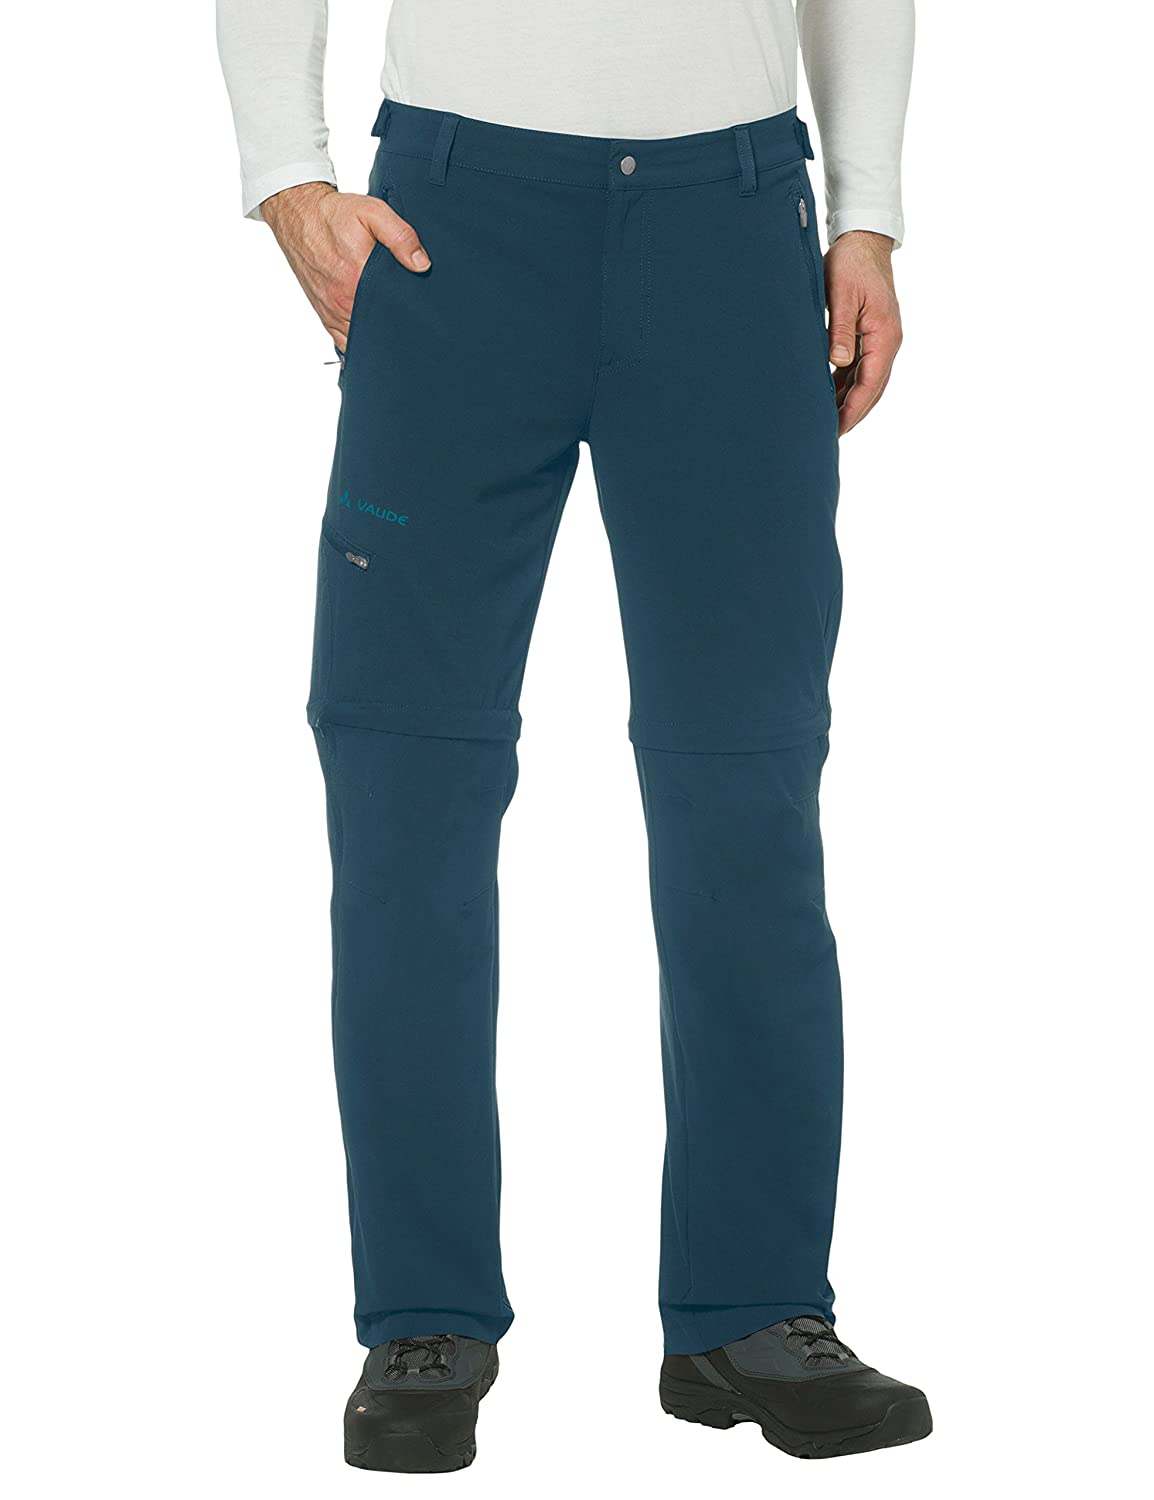 VAUDE Herren Hose Men's Farley Stretch T-Zip Pants II